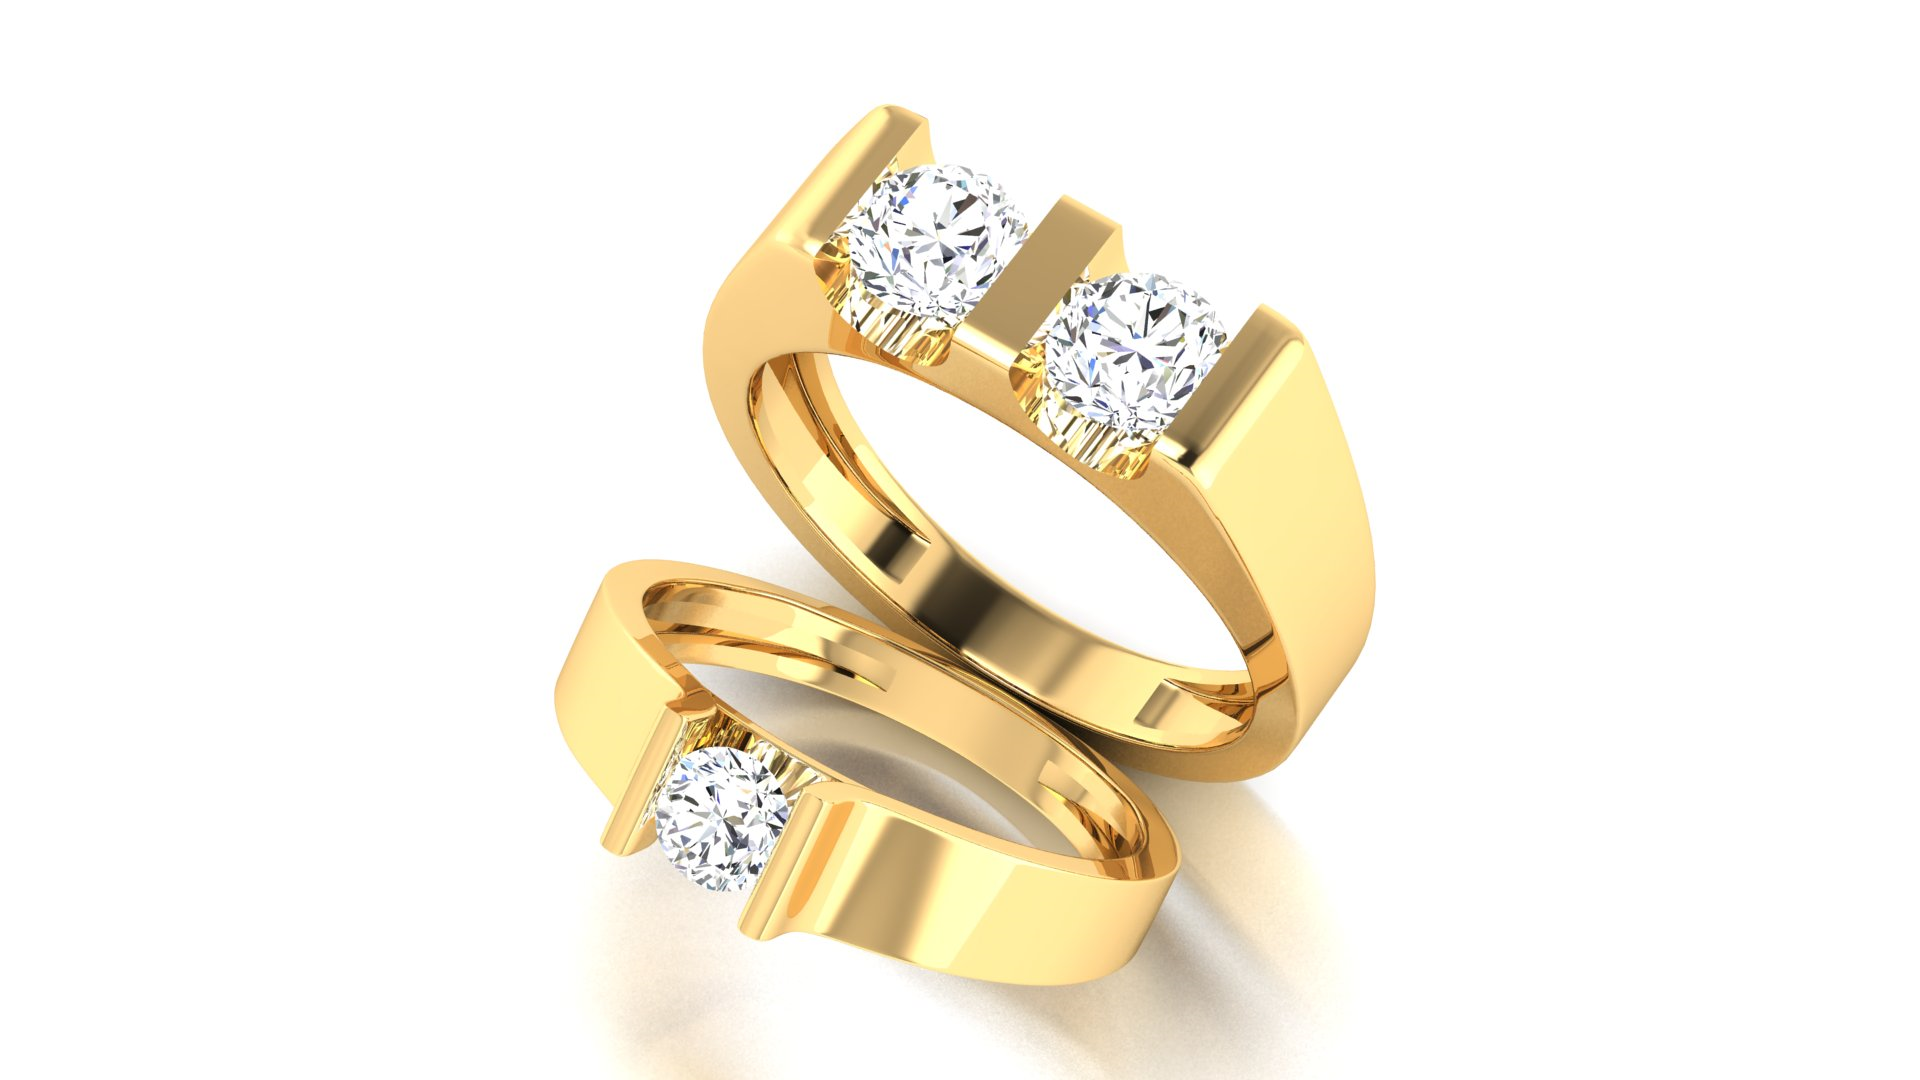 18 Carat Gold Couple Ring for Engagement Ceremony